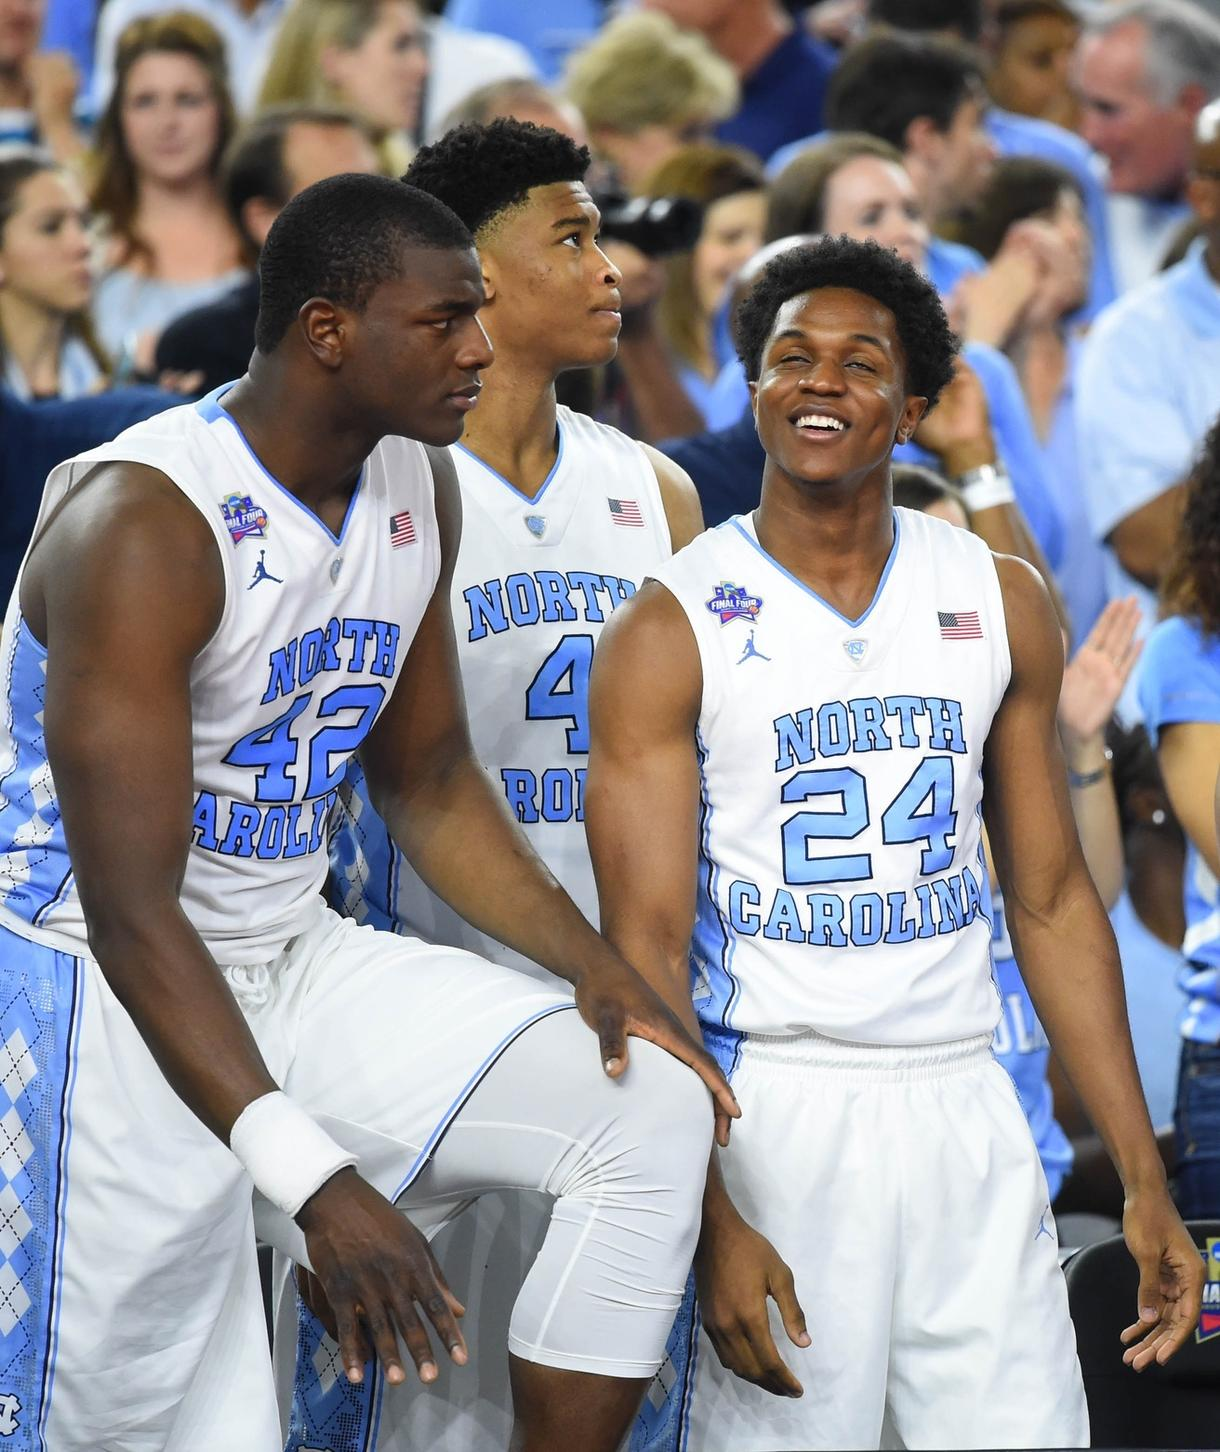 North Carolina Players Joel James 42 Isaiah Hicks 4 And Kenny Williams 24 During The 2016 Final Four Photo By Robert Deutsch USA TODAY Sports